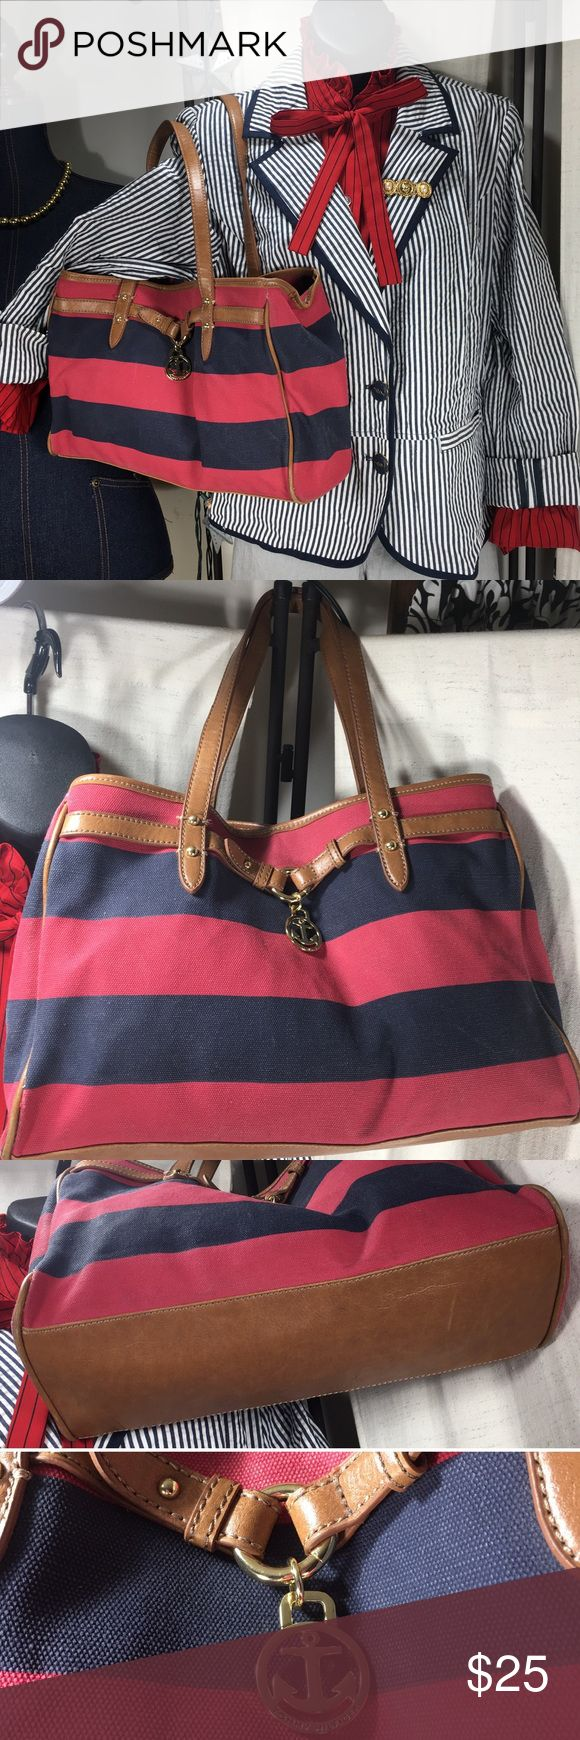 "Tommy Hilfiger Rugby Striped Nautical Purse Tommy Hilfiger Rugby Nautical Purse measures 13"" x 9.5"", strap measures 20"". Imitation leather. Some fading and wear. Tommy Hilfiger Bags Shoulder Bags"